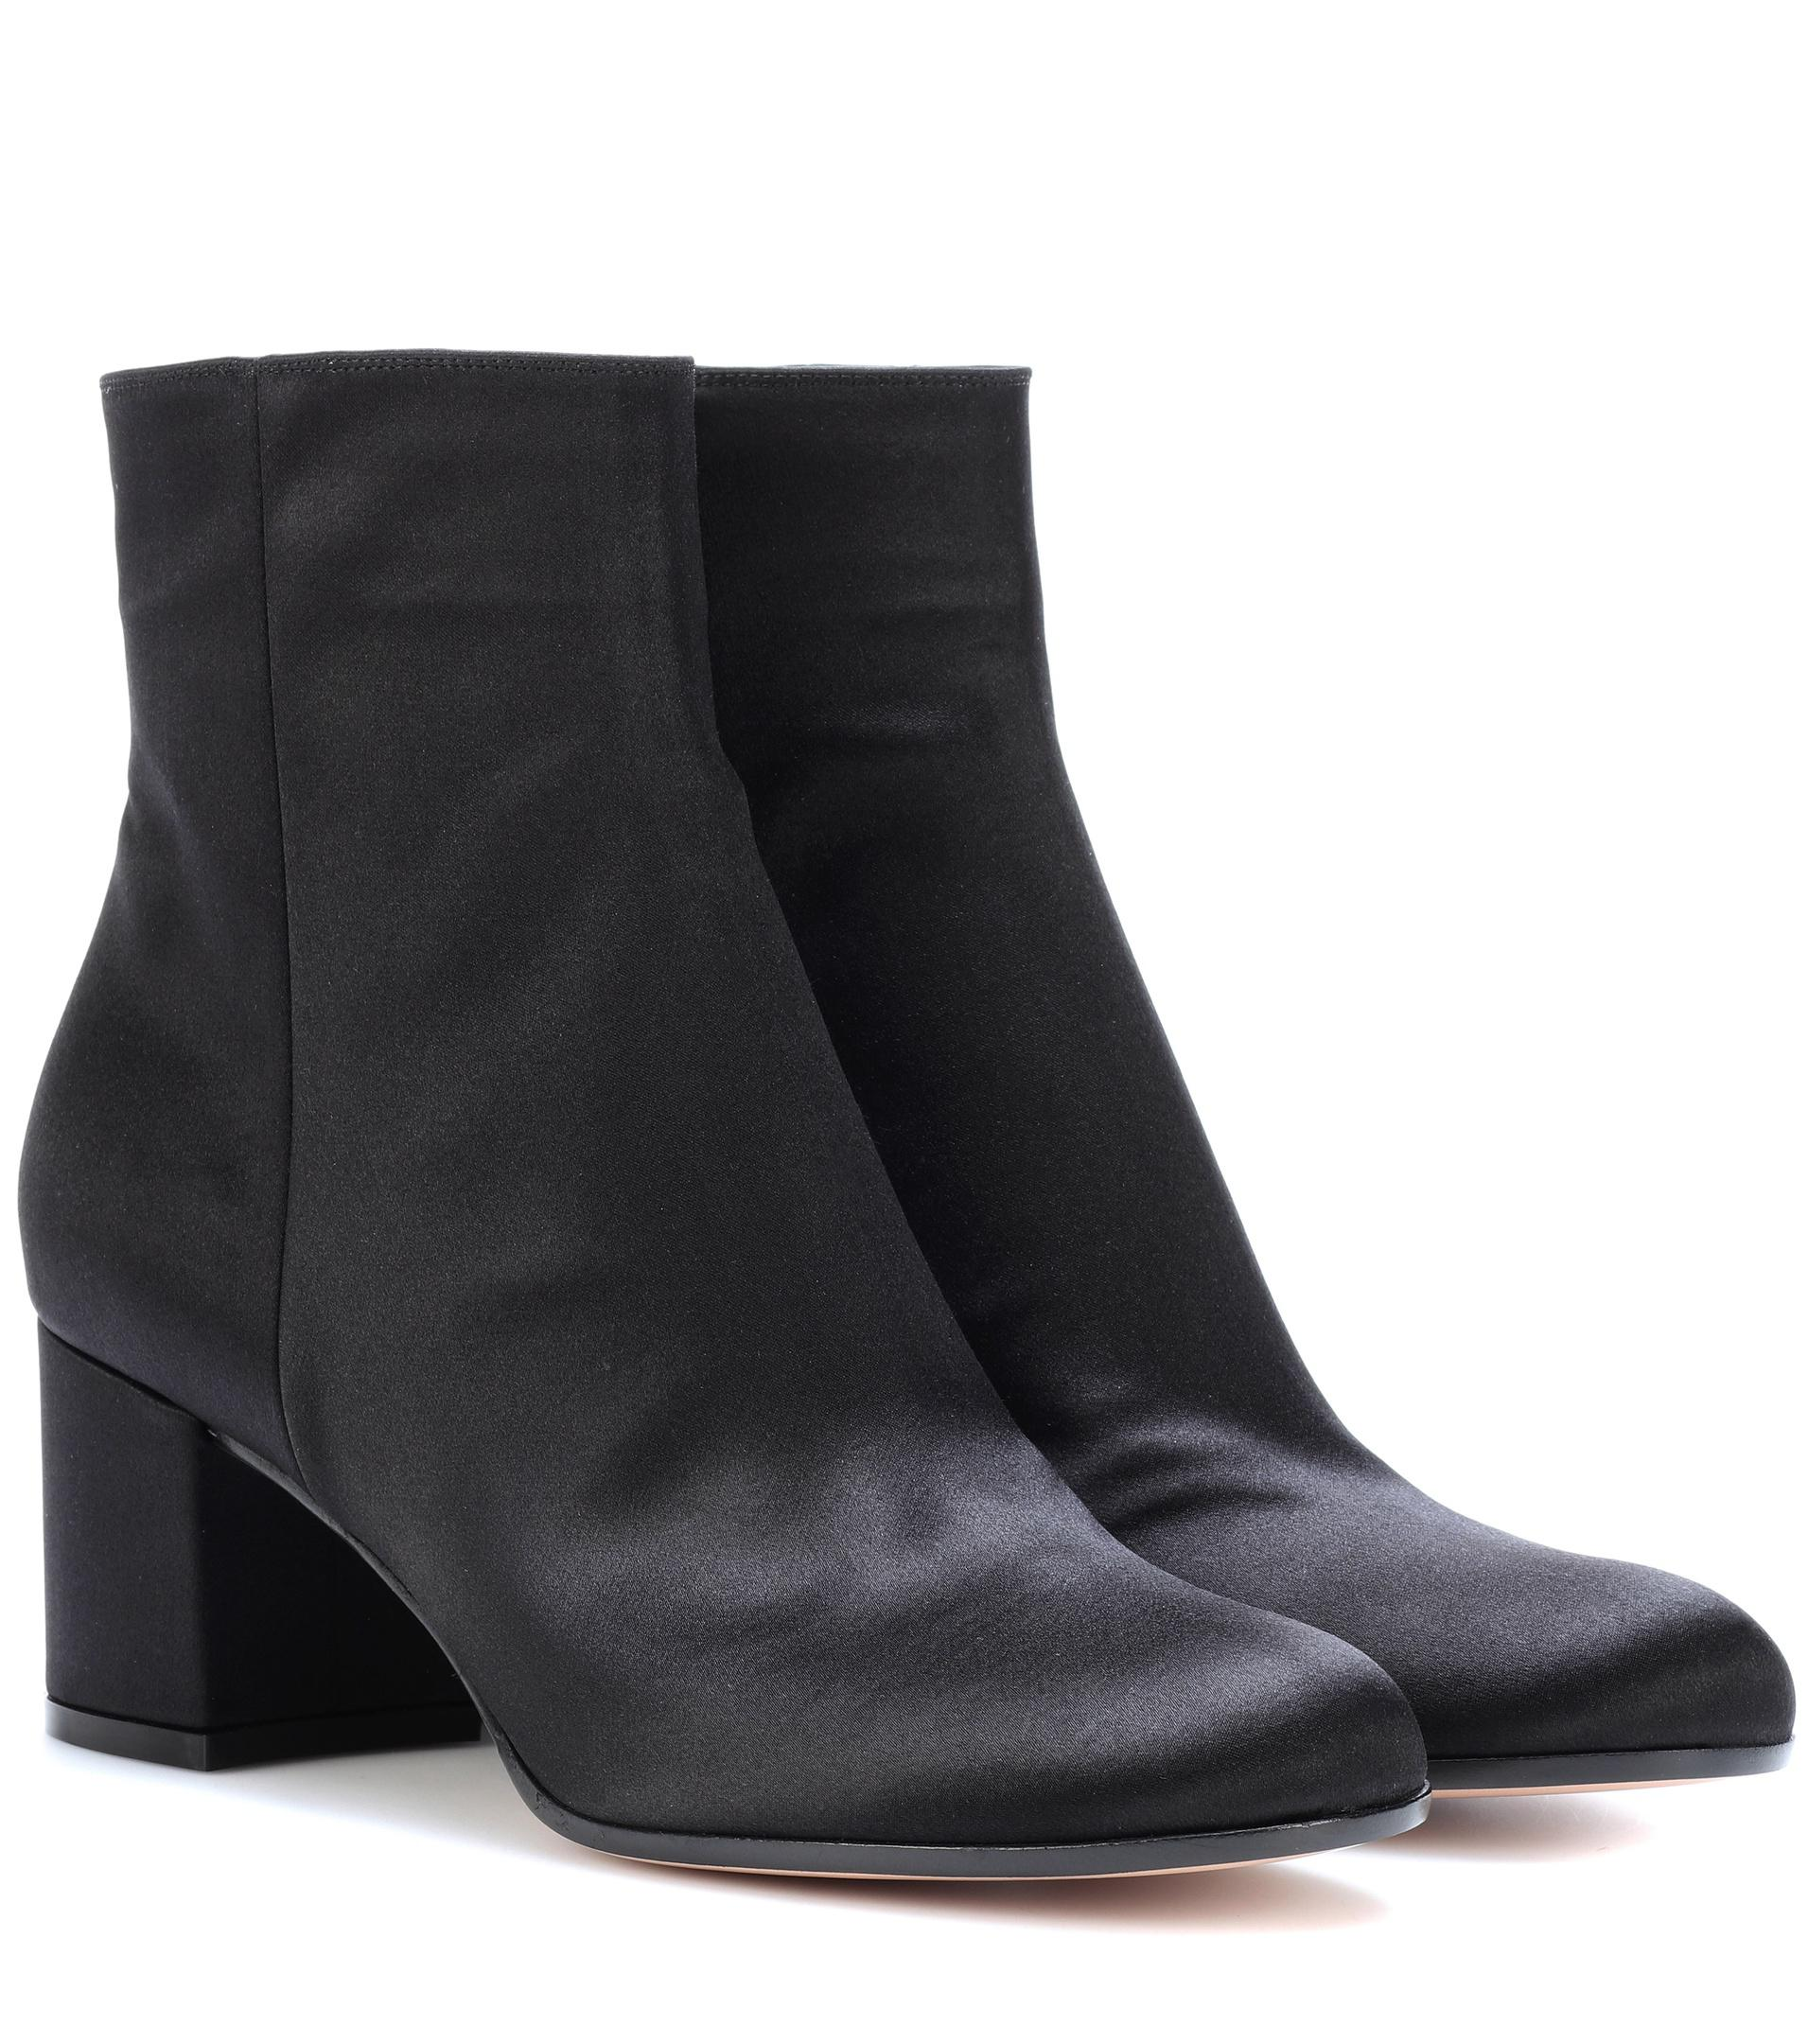 Gianvito Rossi Margaux Mid satin ankle boots ZuSPnRR6Tr